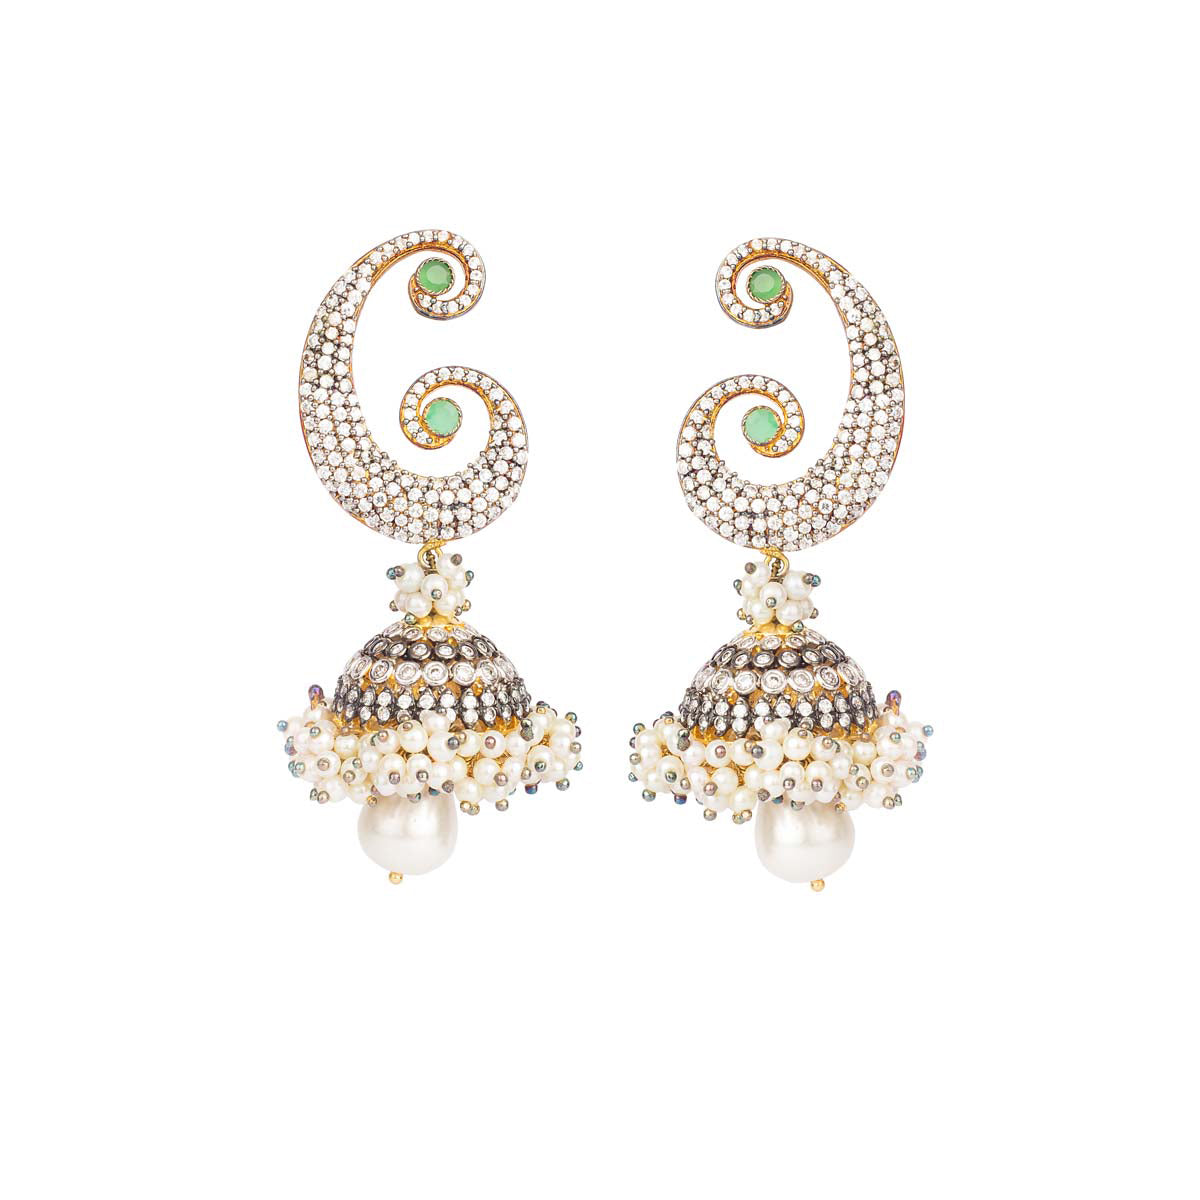 Bridge the beauty of modern and traditional with these antique gold mixed metal alloy earrings made jazzy with pearls and accented mint green studs.